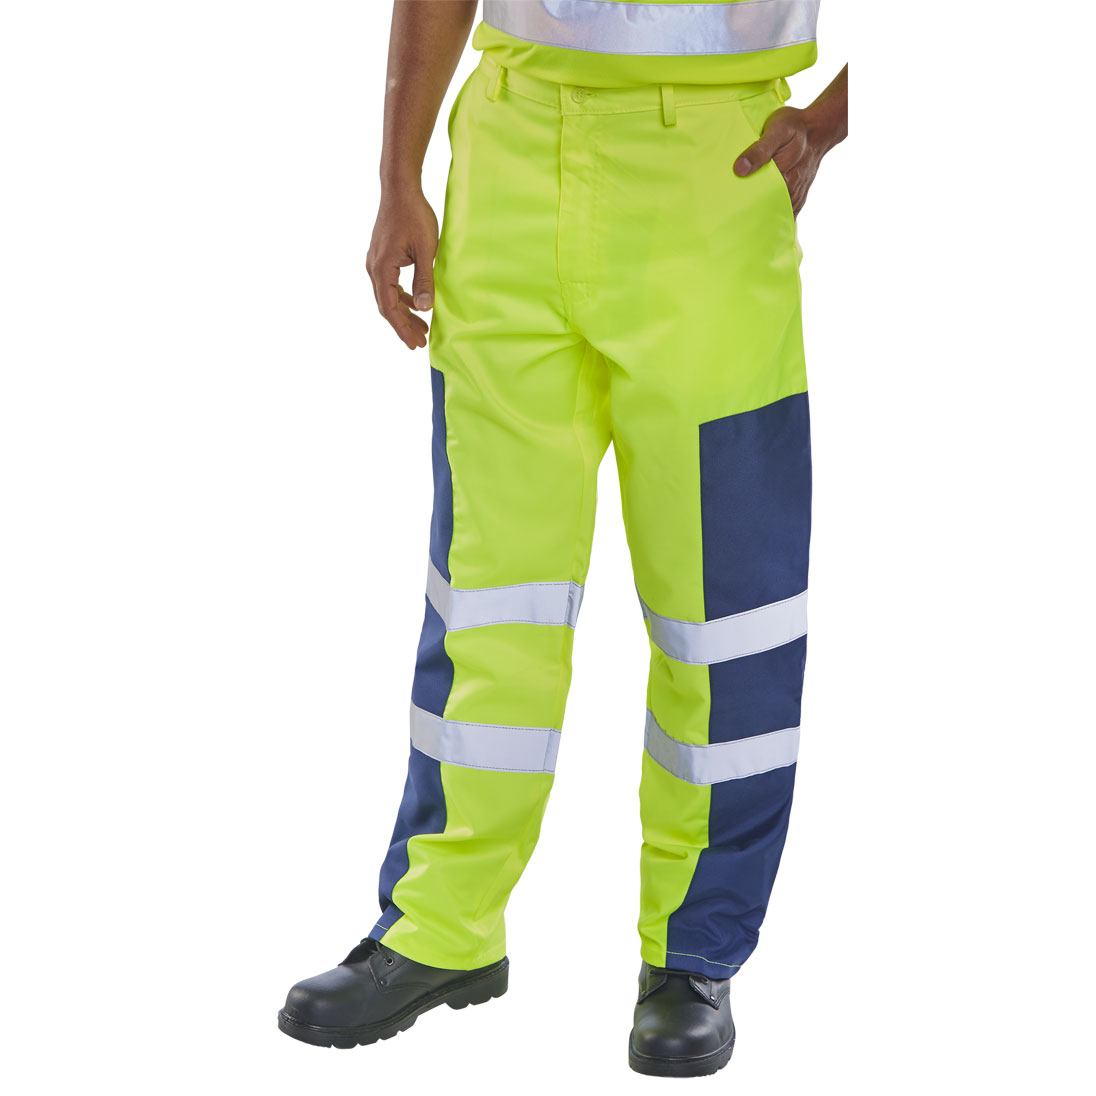 Click Workwear Trousers Hi-Vis Nylon Patch Yellow/Navy Blue 30 Ref PCTSYNNP30 Up to 3 Day Leadtime